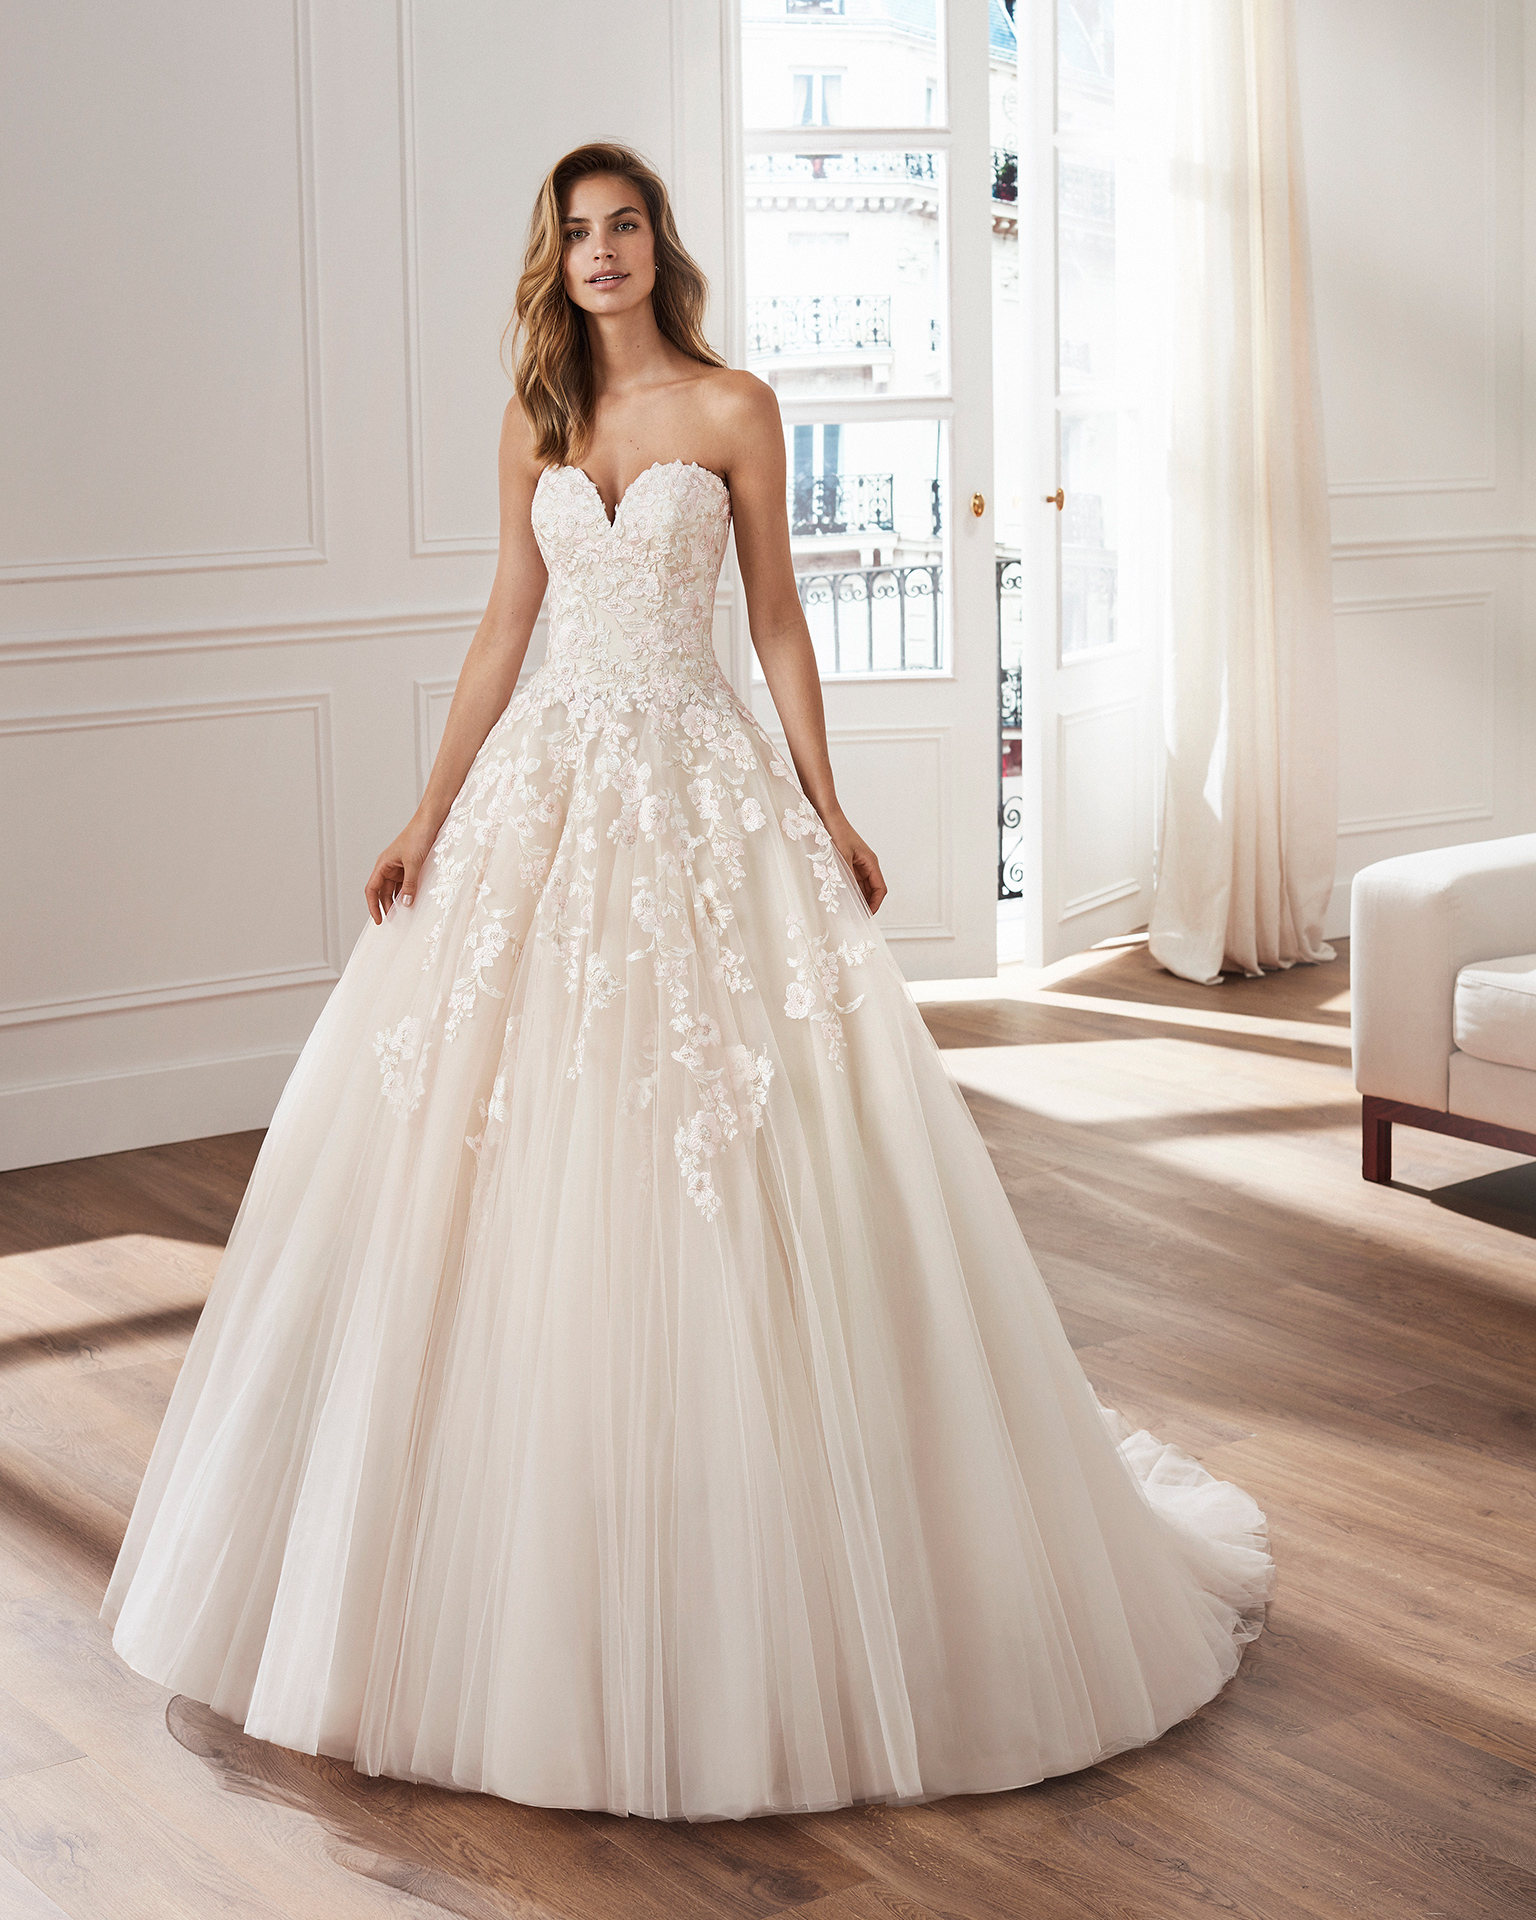 Lace and tulle princess-style wedding dress. Semi-sweetheart neckline and skirt and bodice with lace appliqués. Available in natural/pink and natural. 2019  Collection.